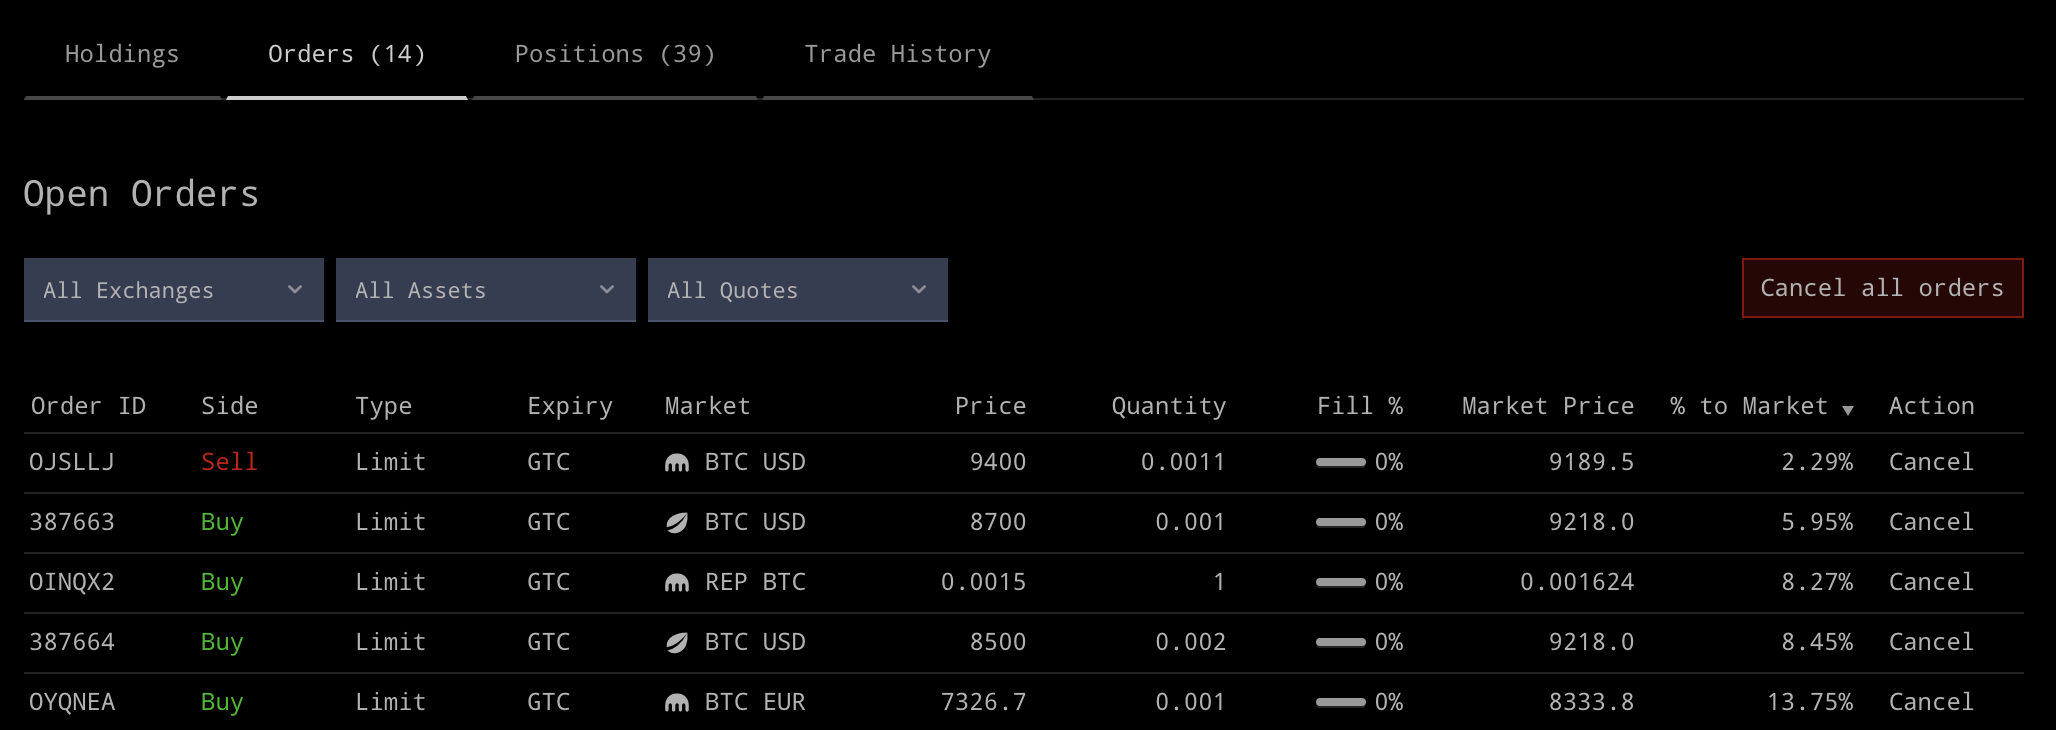 Sort by how close your orders are to the market price